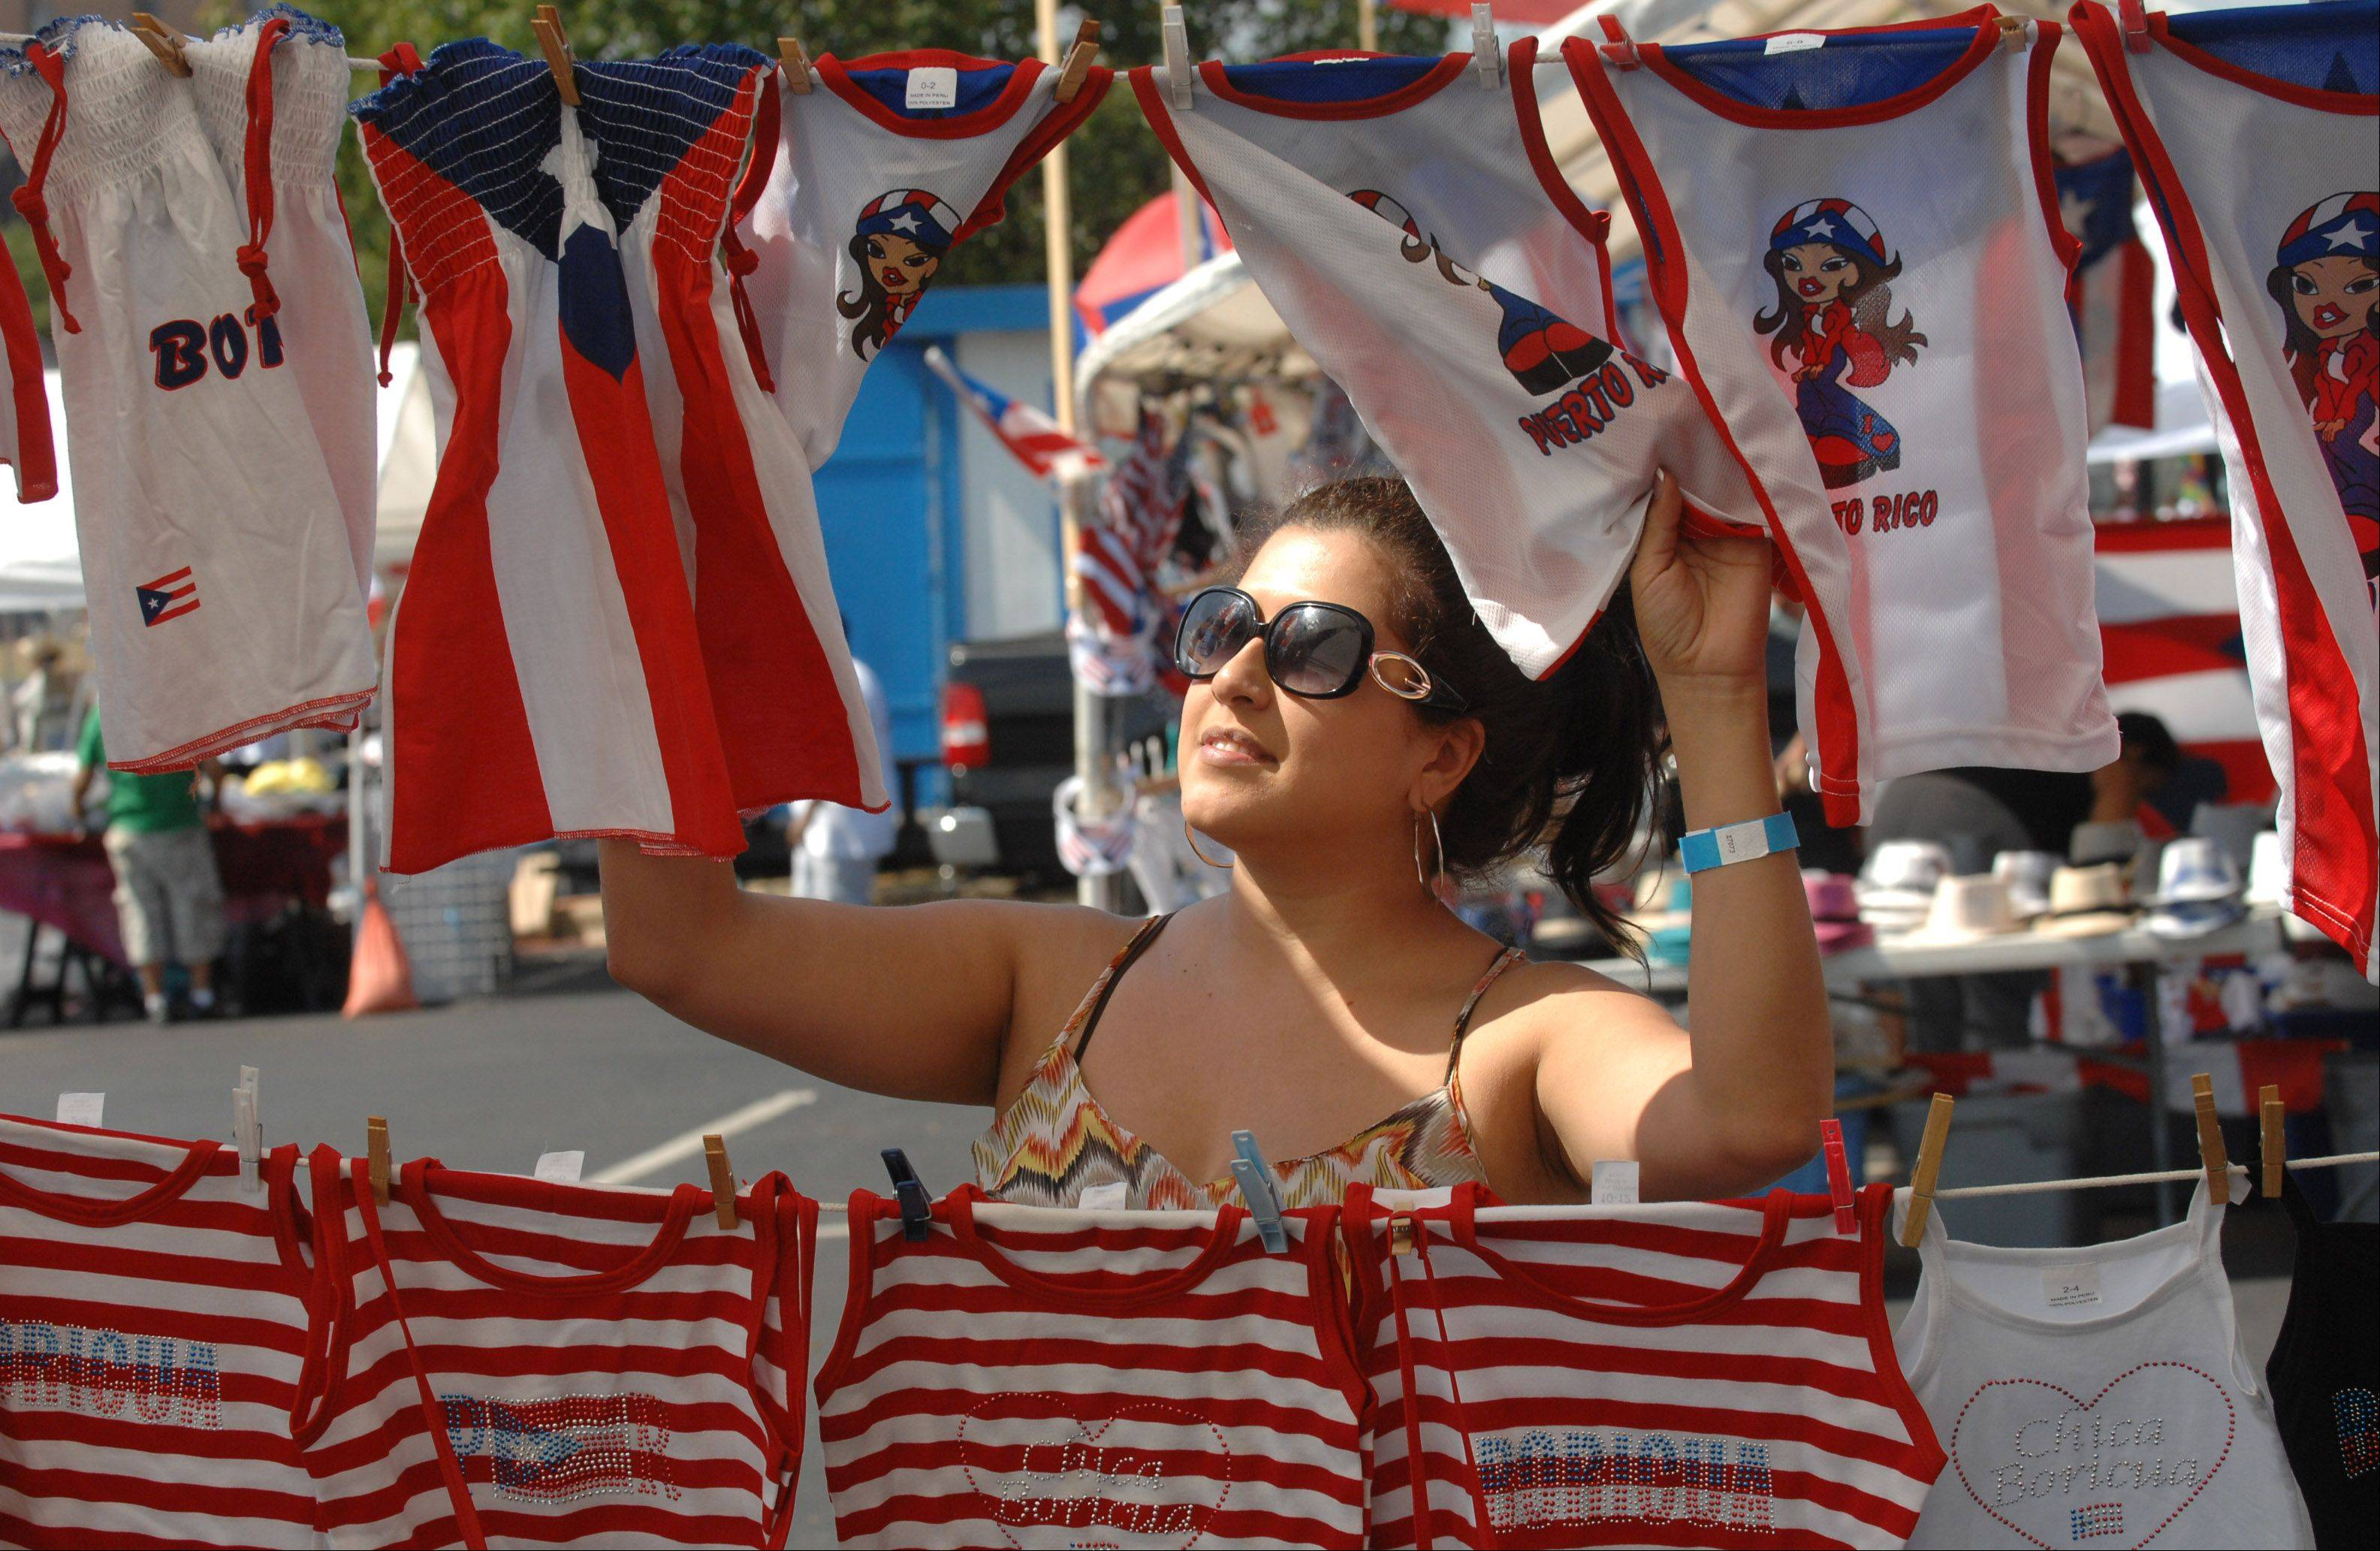 The 42nd annual Aurora Puerto Rican Heritage Festival is scheduled for July 27 and 28 at RiverEdge Park, despite initial concerns organizers could not afford to hold the festival at the city's newest outdoor venue.